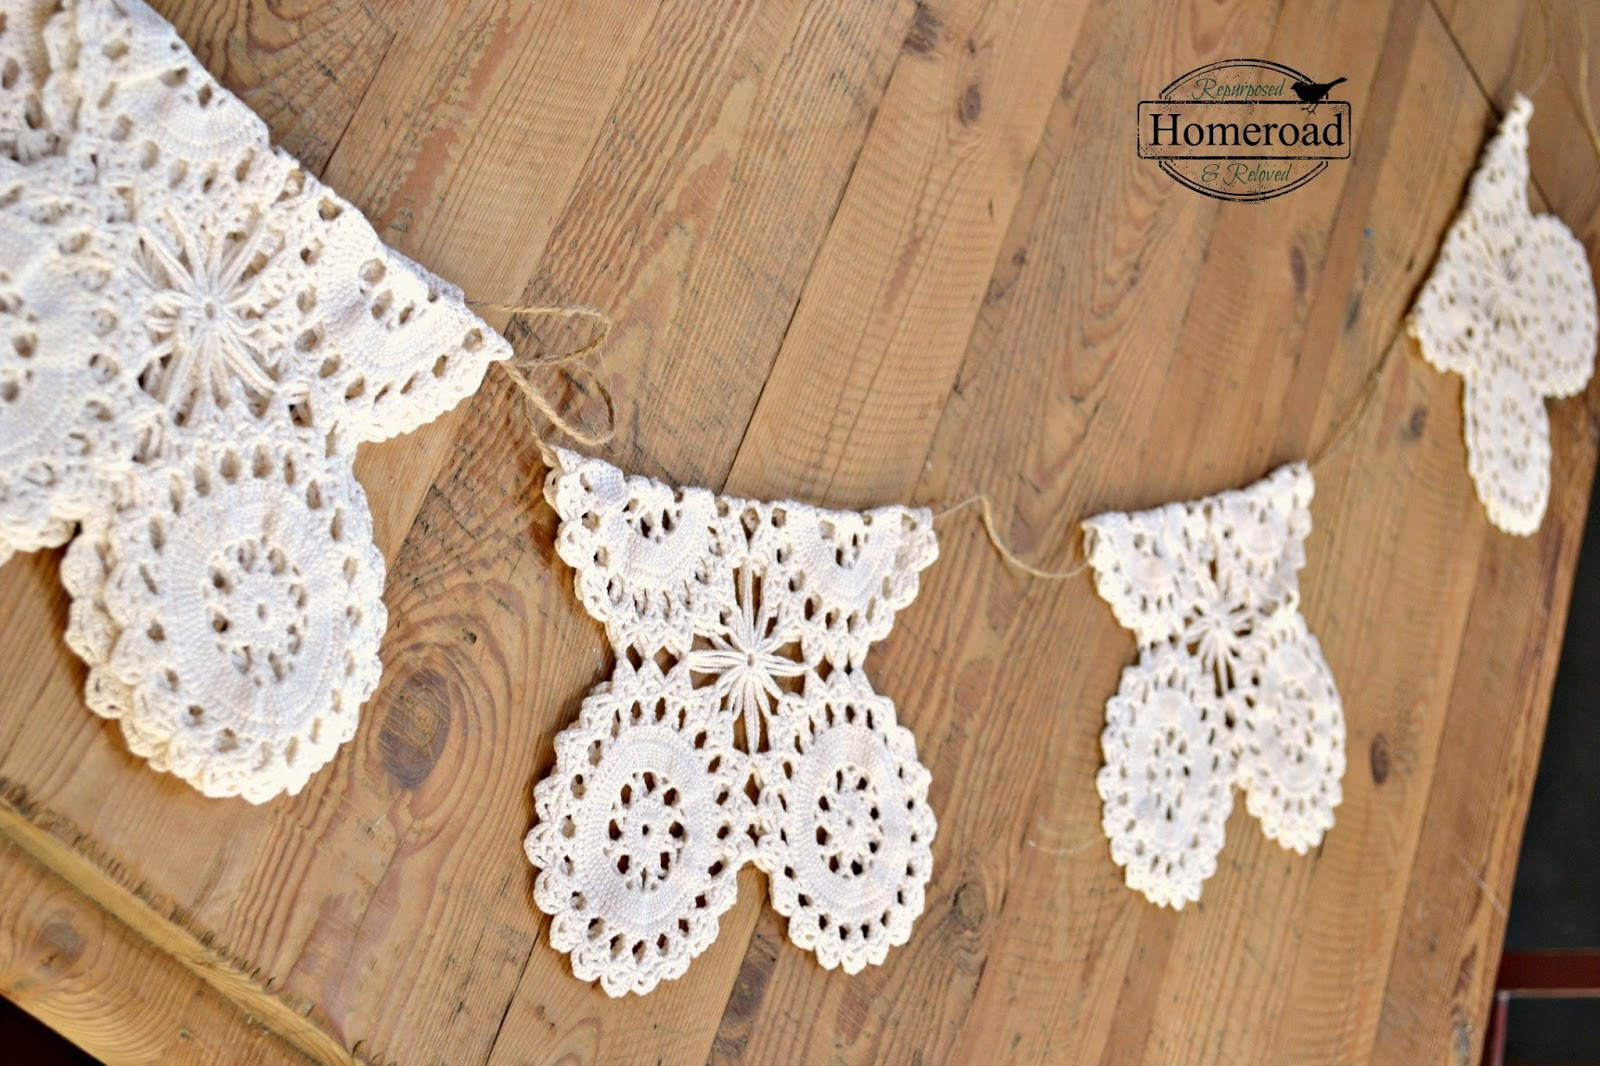 Vintage-crocheted-doily-garland www.homeroad.net